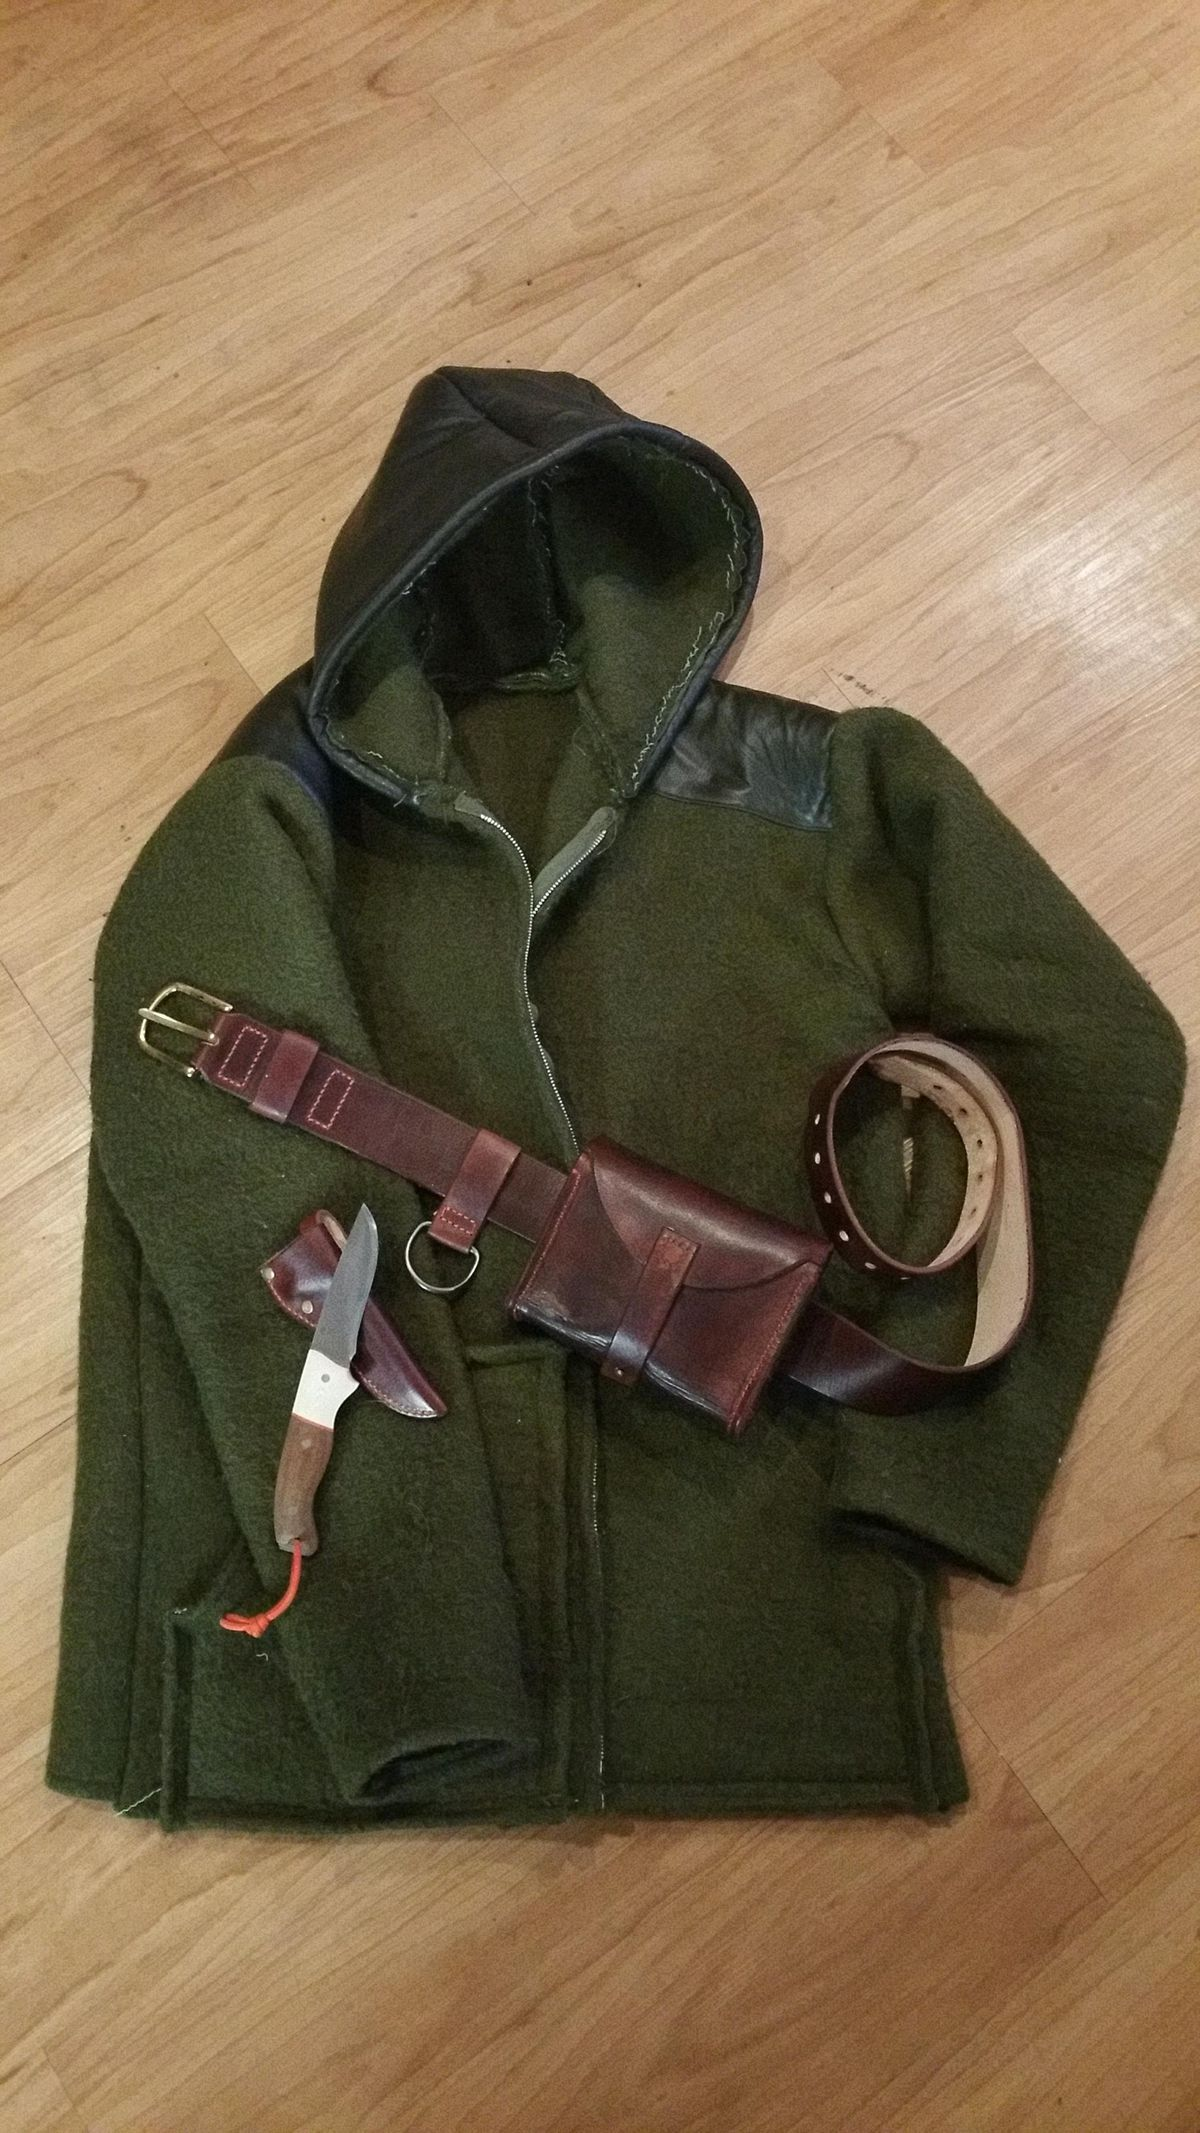 The Prepper Obsession With Clothes - Racked